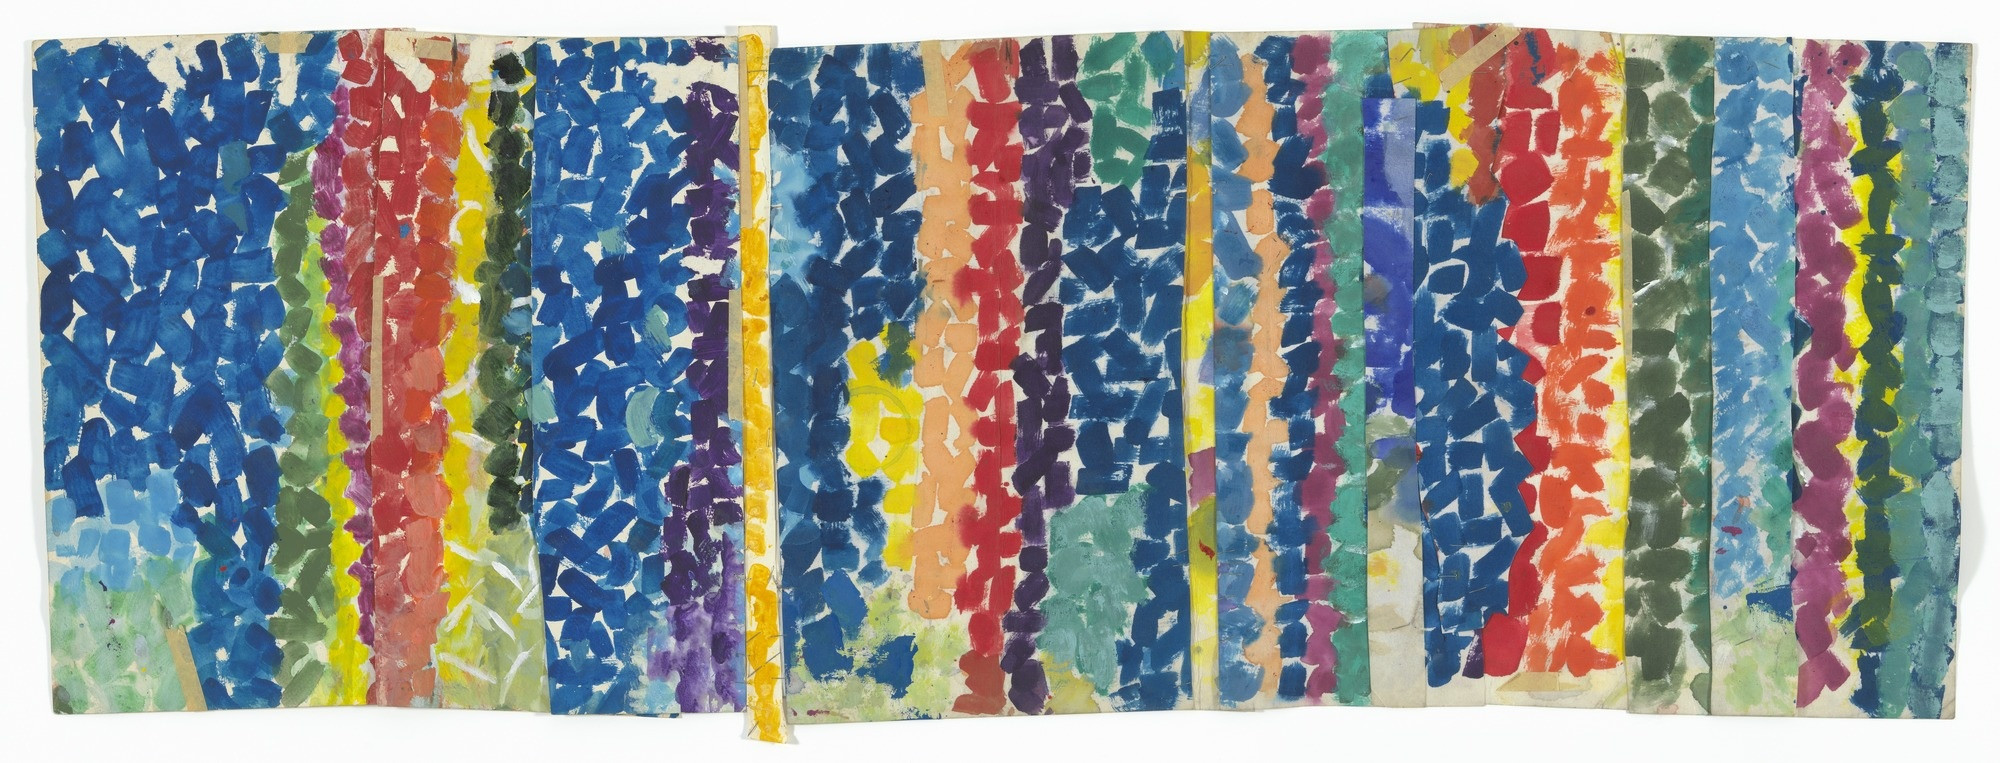 Alma Woodsey Thomas (American, 1891–1978). Untitled. c. 1968. Synthetic polymer paint and pressure-sensitive tape on cut-and-stapled paper, 19 1/8 × 51 1/2″ (48.6 × 130.8 cm). The Museum of Modern Art, New York. Gift of Donald B. Marron, 2015